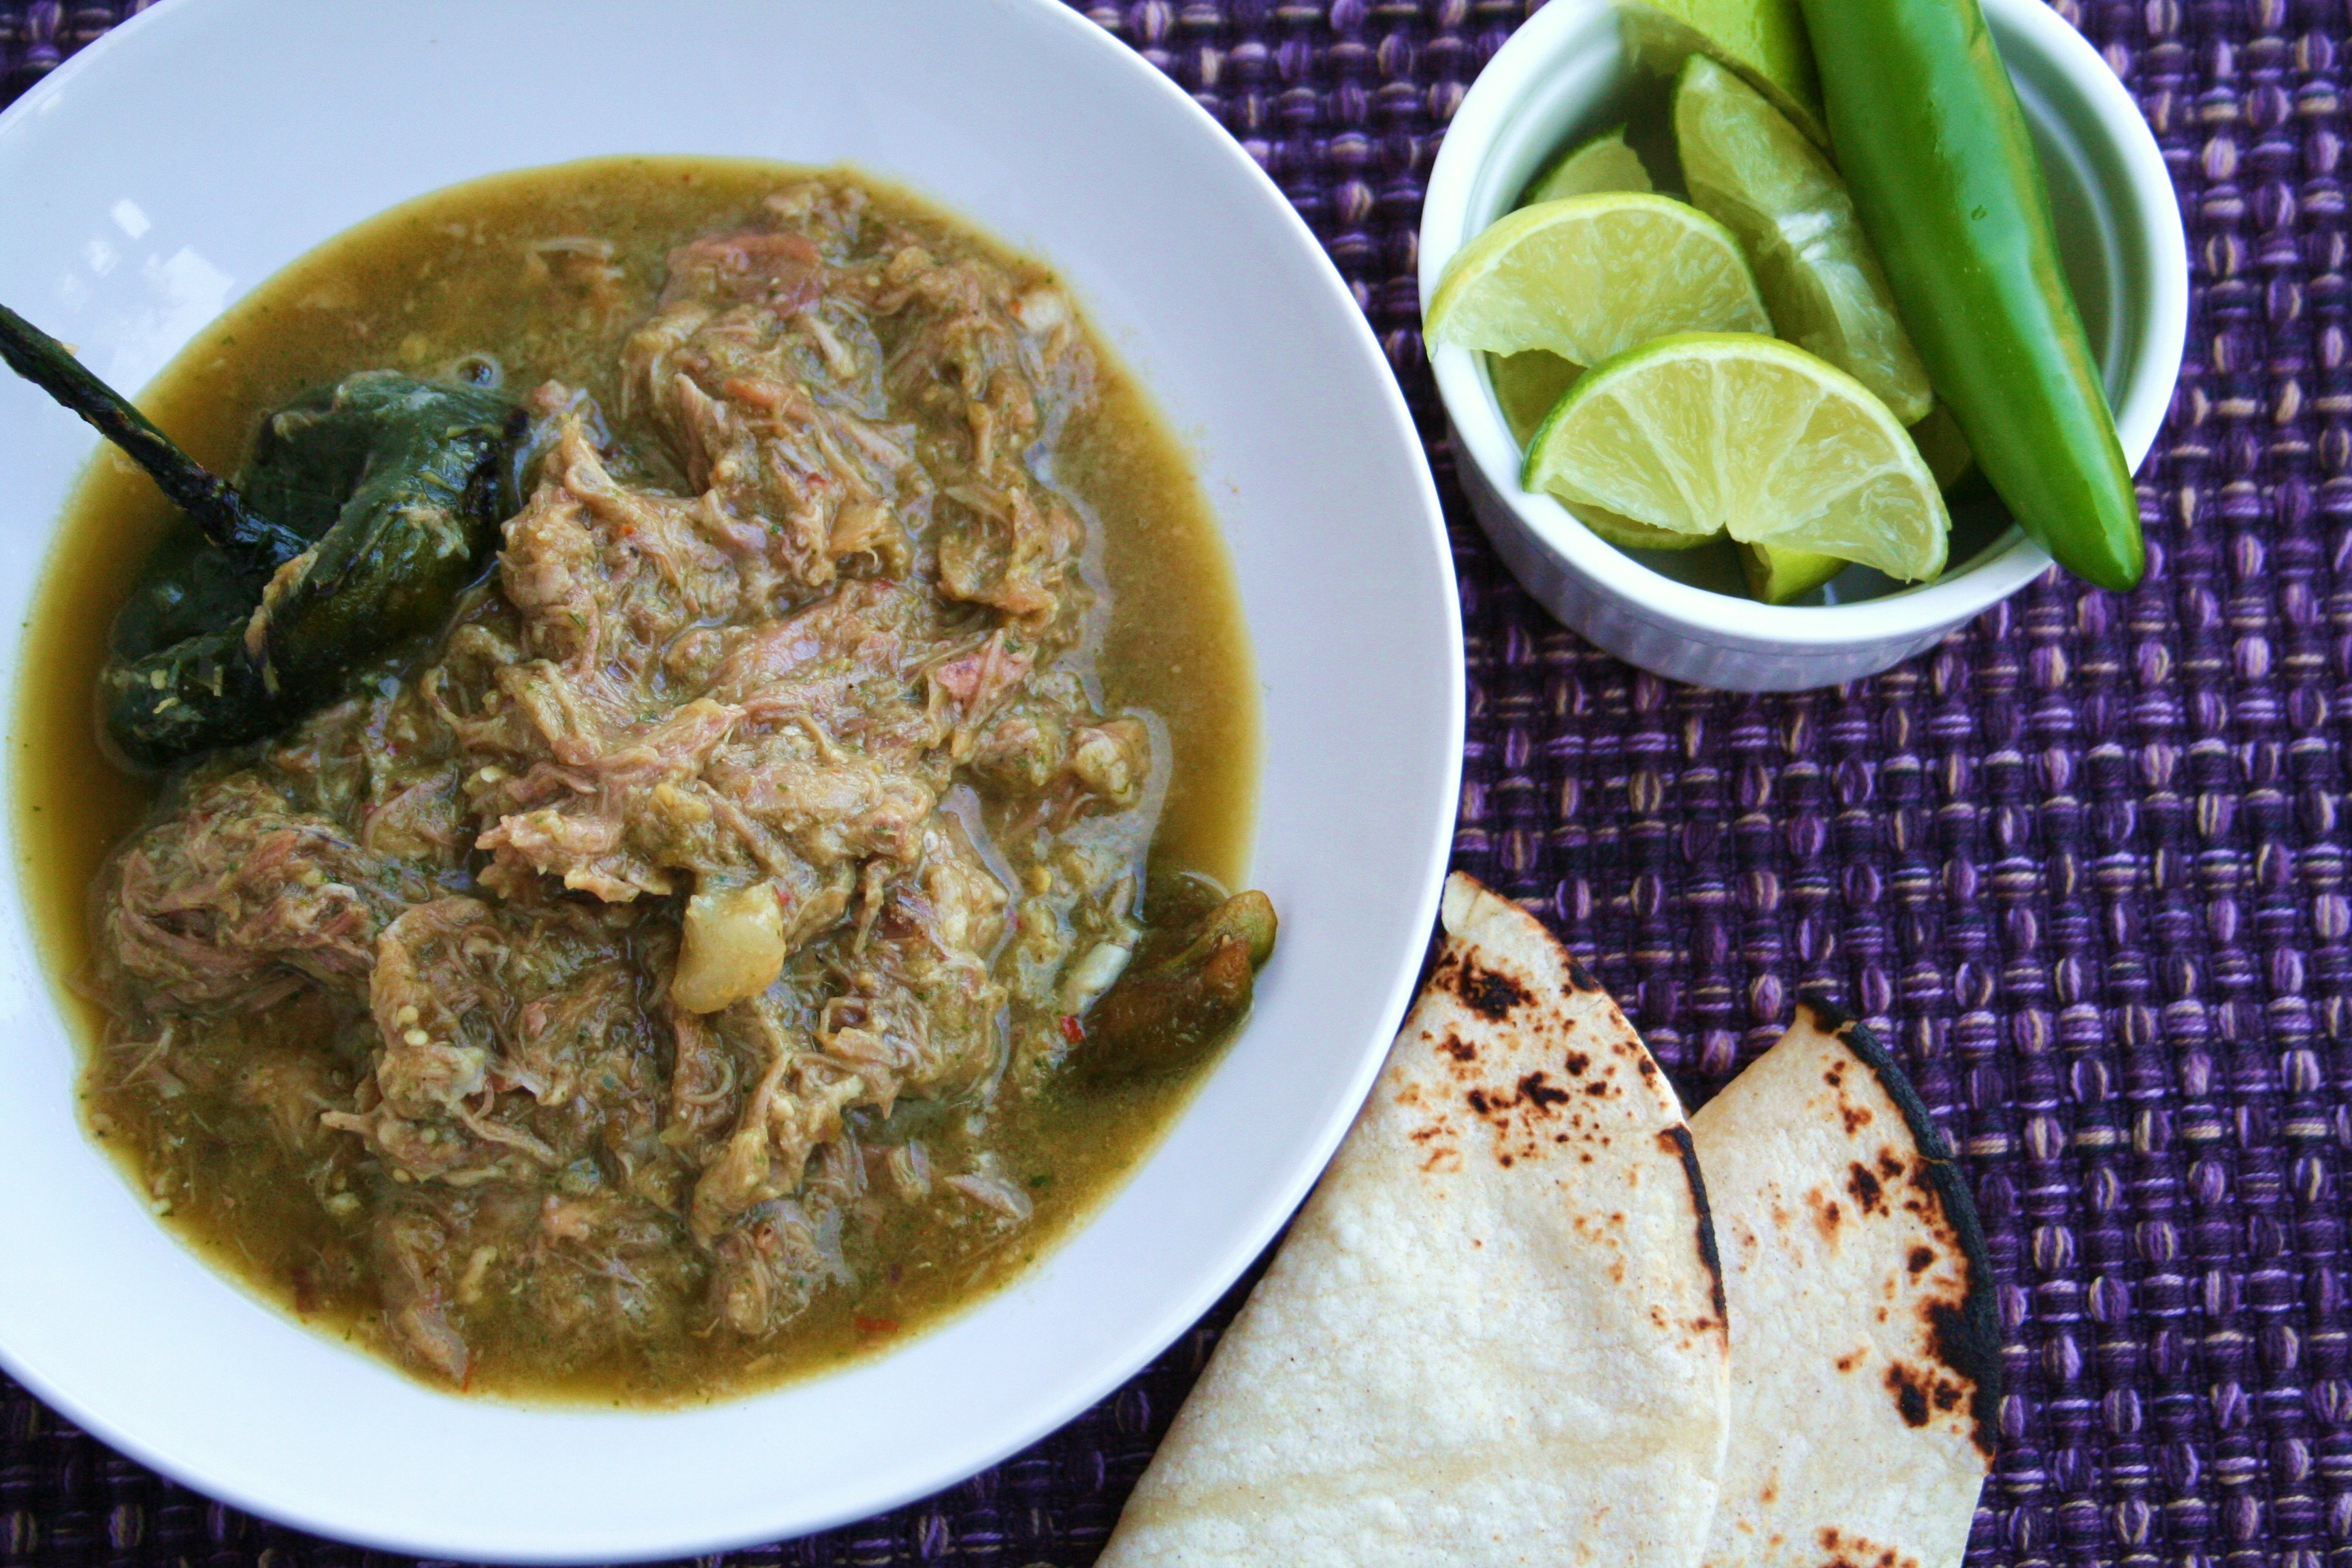 SLOW COOKED PORK CHILE VERDE RECIPE